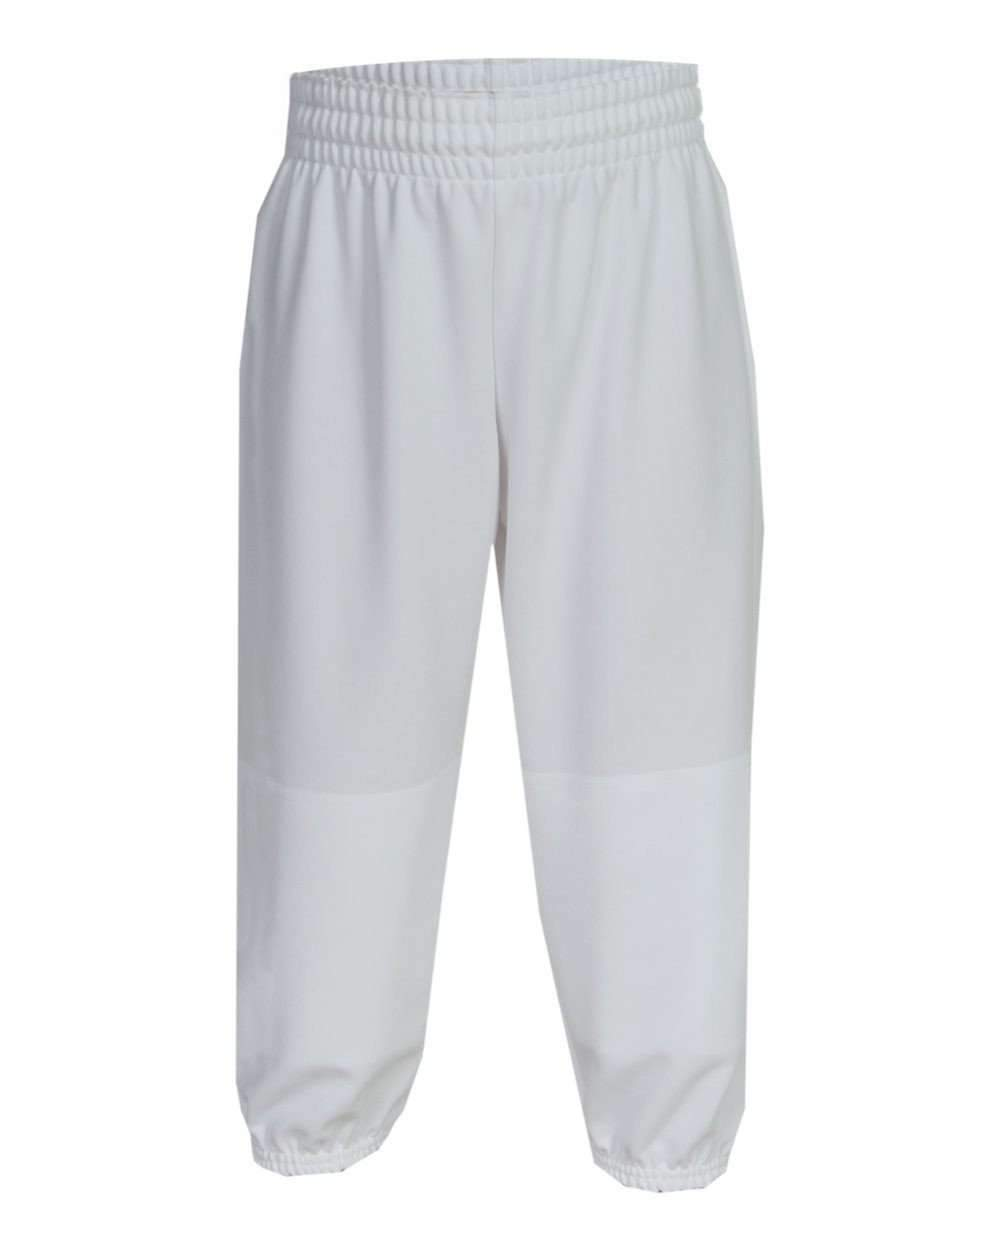 First String Youth Pull Up White Baseball Pants 100% Polyester - Assorted Sizes